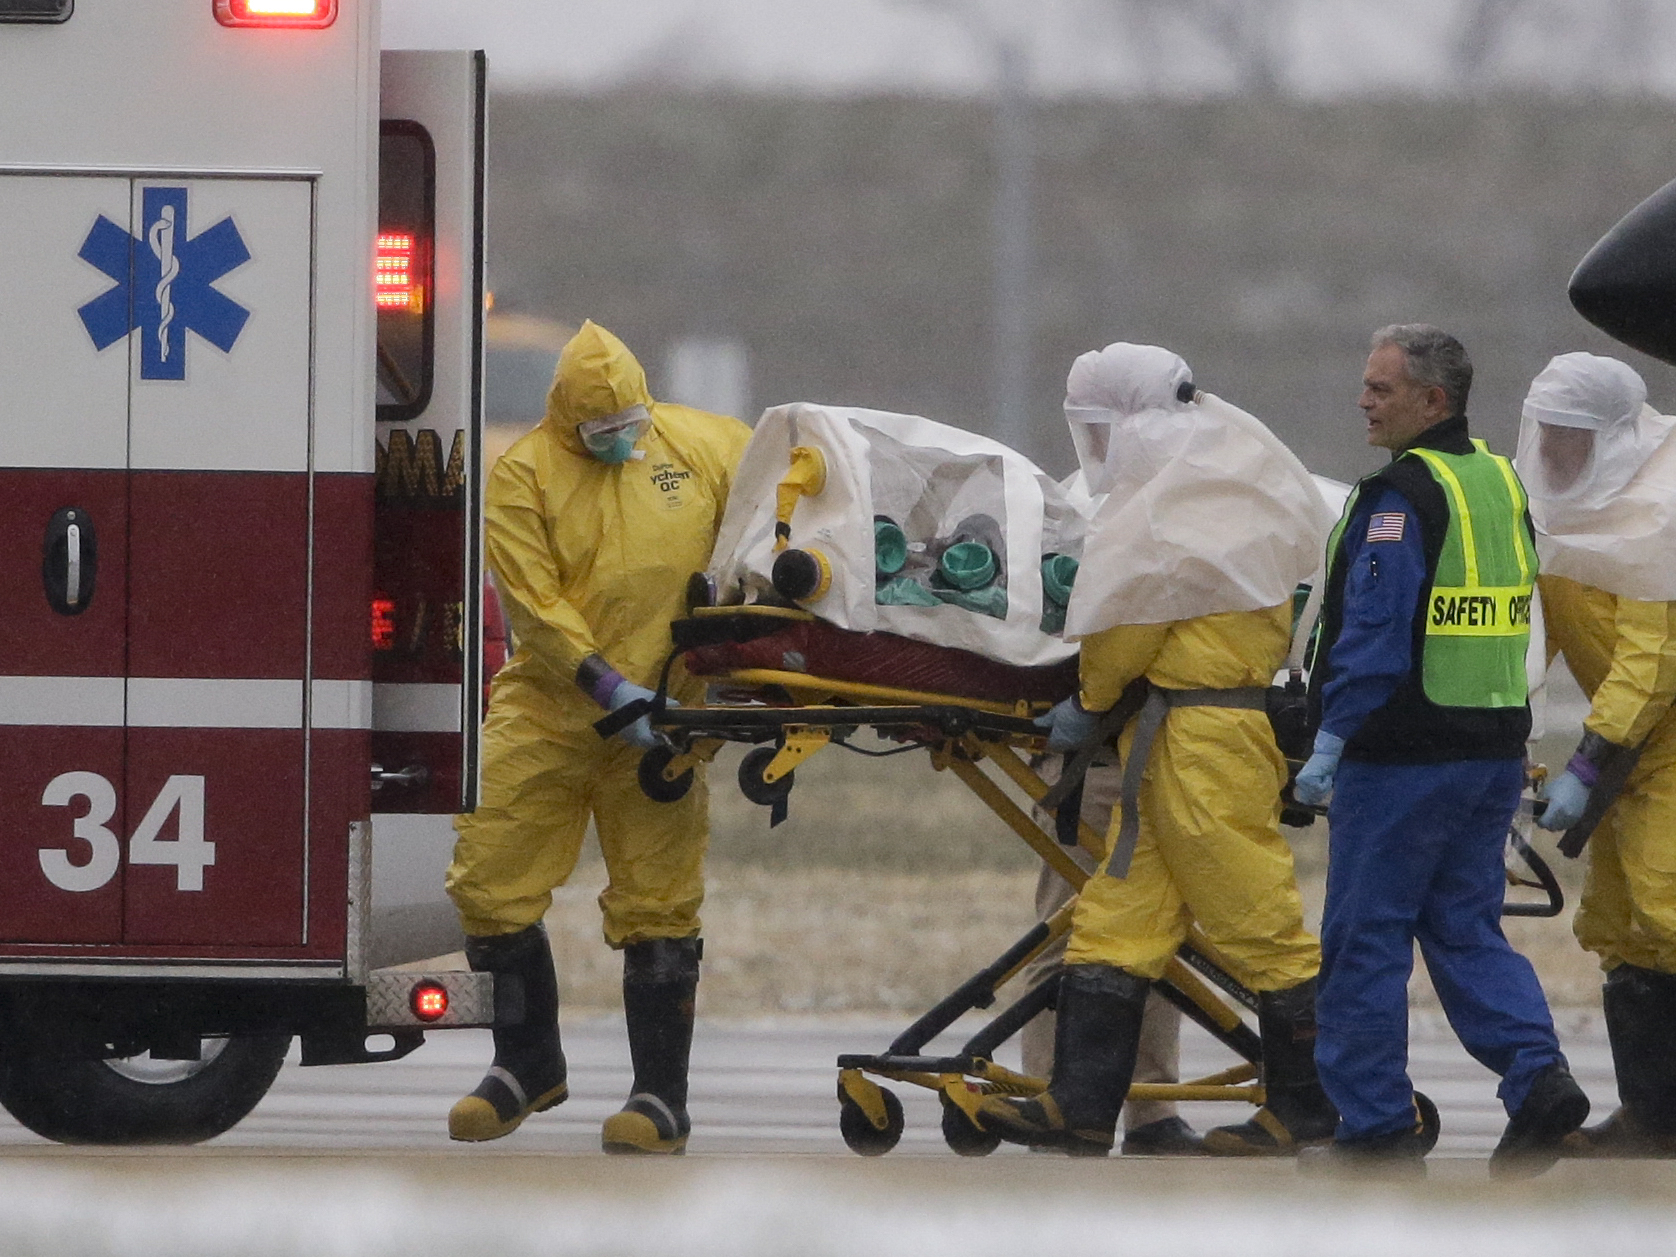 Ebola Patient Being Treated At Nebraska Hospital Has Died